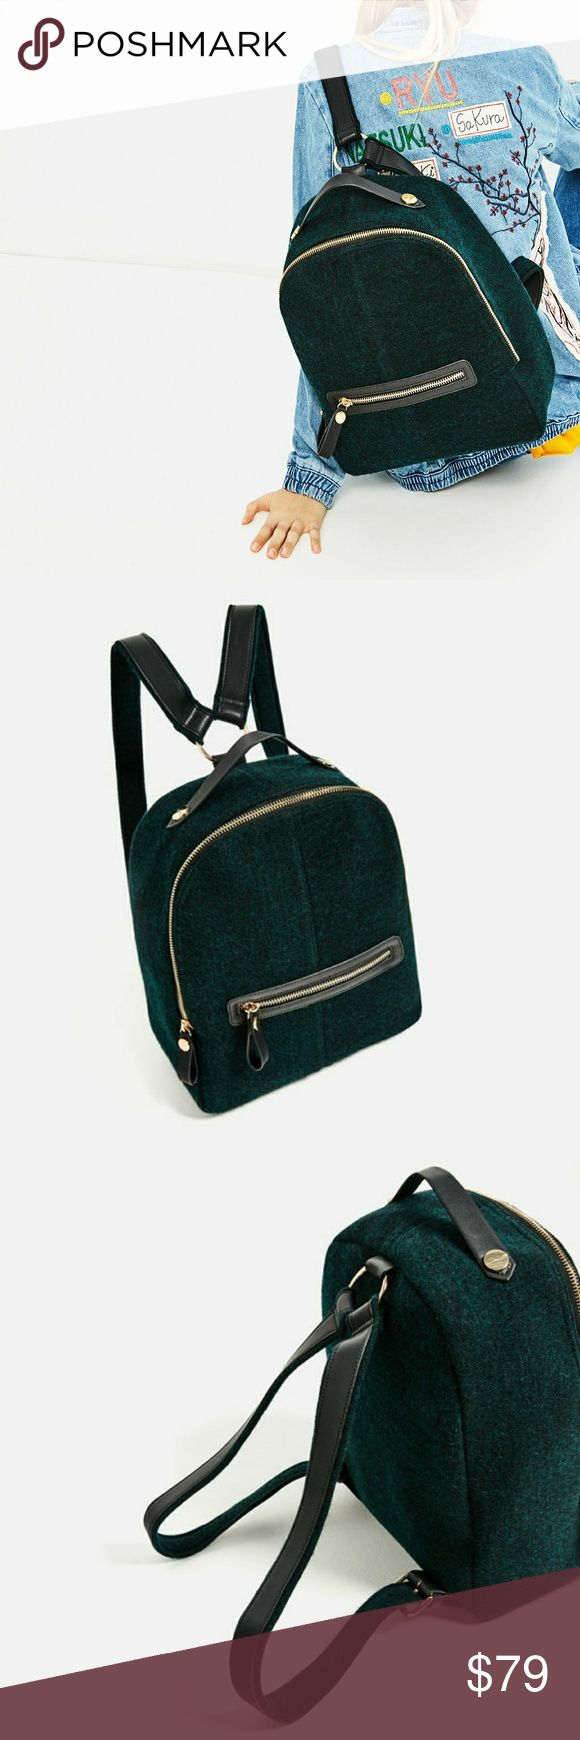 Zara backpack (8806) New with tag. Bottle green wool backpack. Small pocket on the front. Gold-toned hardware. Adjustable shoulder strap. Zip closure.?  Height x Width x Depth: 37 x 30 x 15 cm. / 14.5 x 11.8 x 5.9?  OUTER SHELL MAIN FABRIC 80% polyester, 20% wool  STRAP 48% polyester, 40% polyurethane, 12% wool  LINING 100% polyester  FILLING 100% ethylene vinyl acetate  Color Bottle green Zara Bags Backpacks